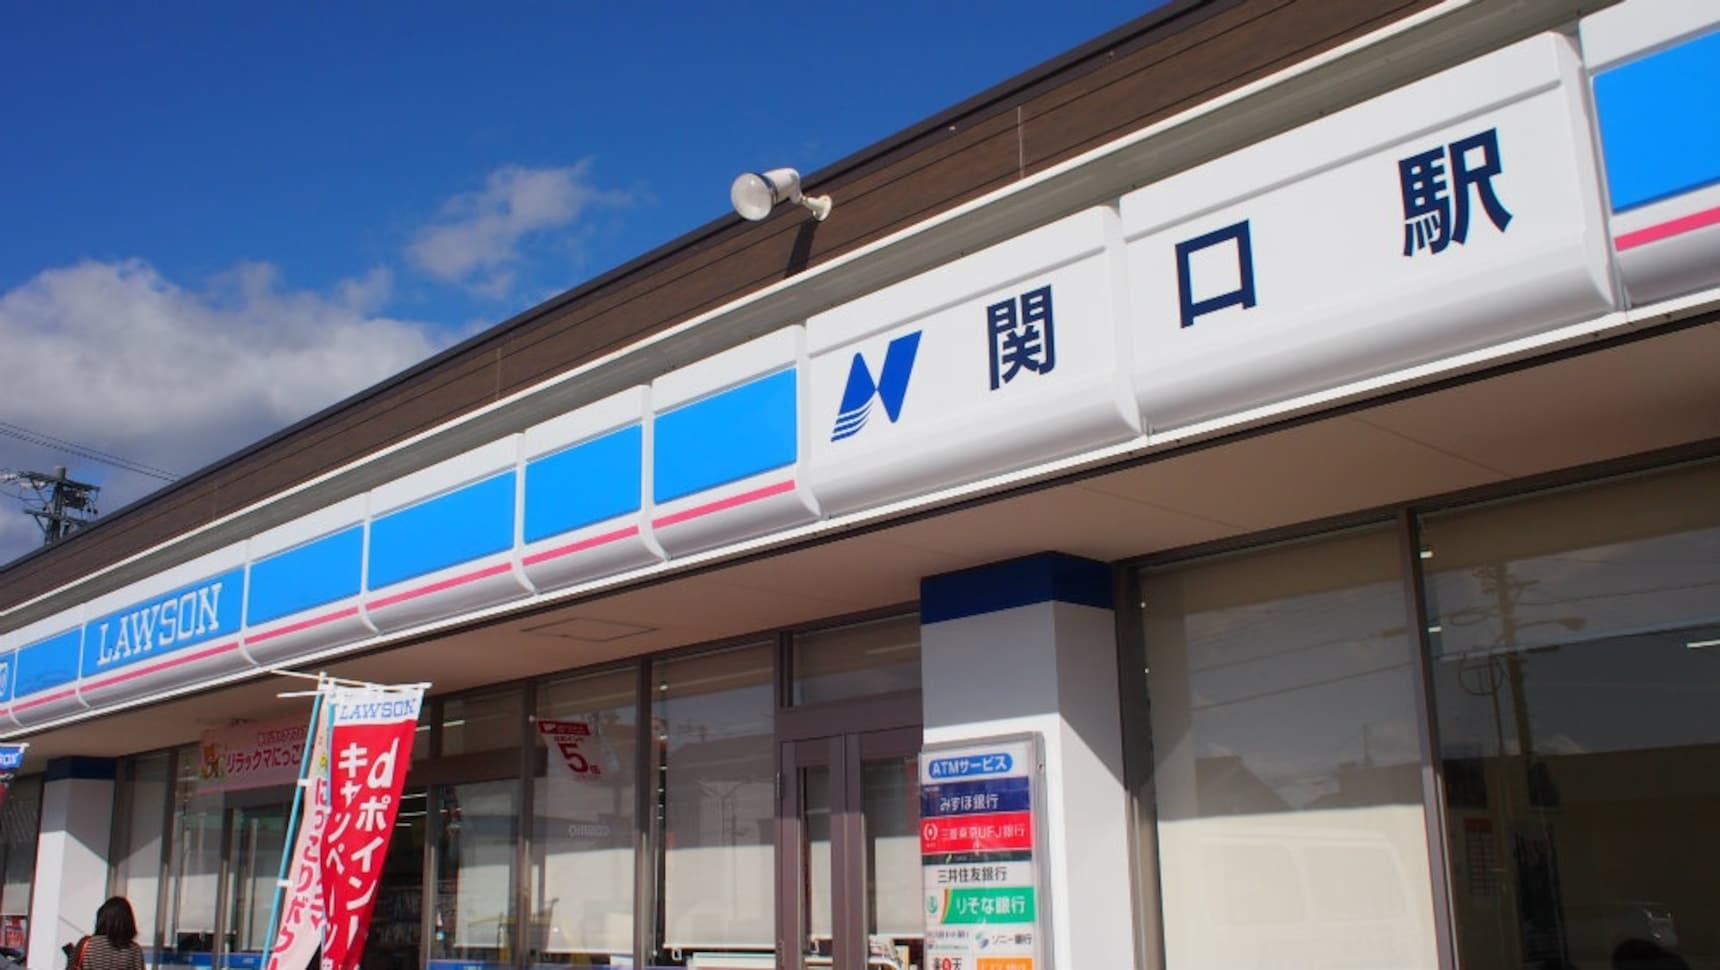 This Lawson Station is an Actual Station!